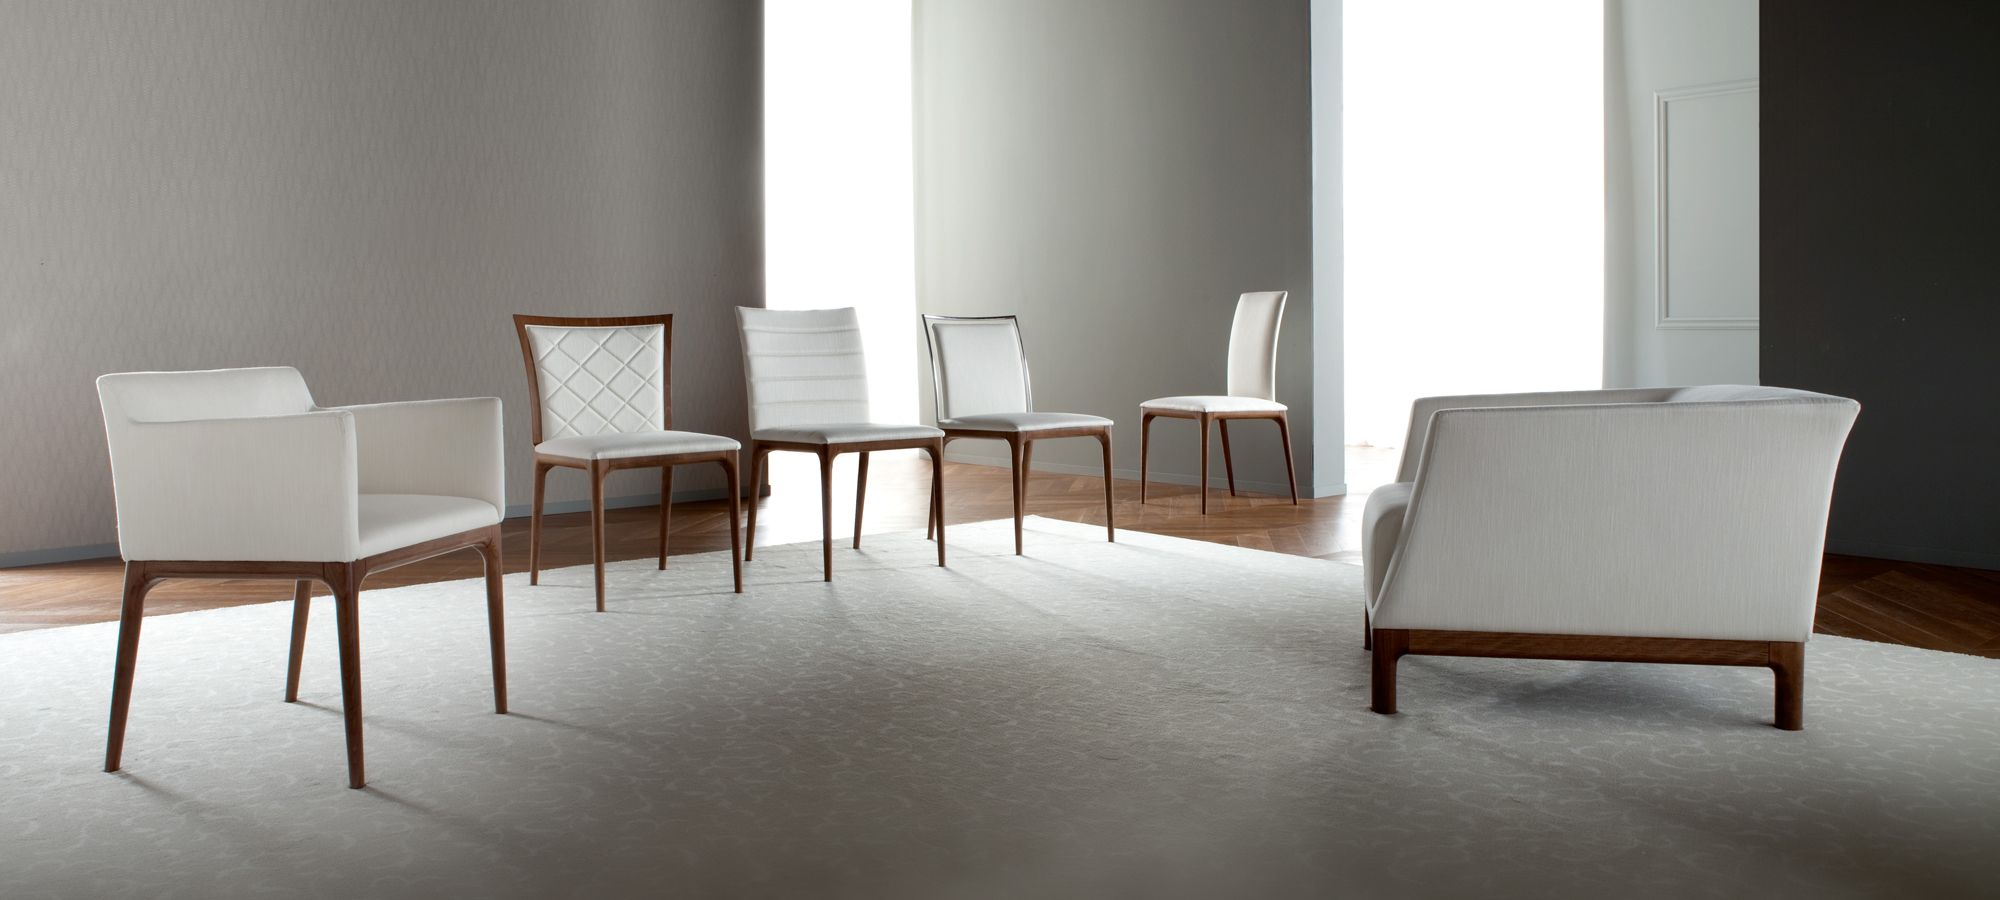 Pietro Costantini Four Seasons Www Casarredo Co Za Dining Chairs